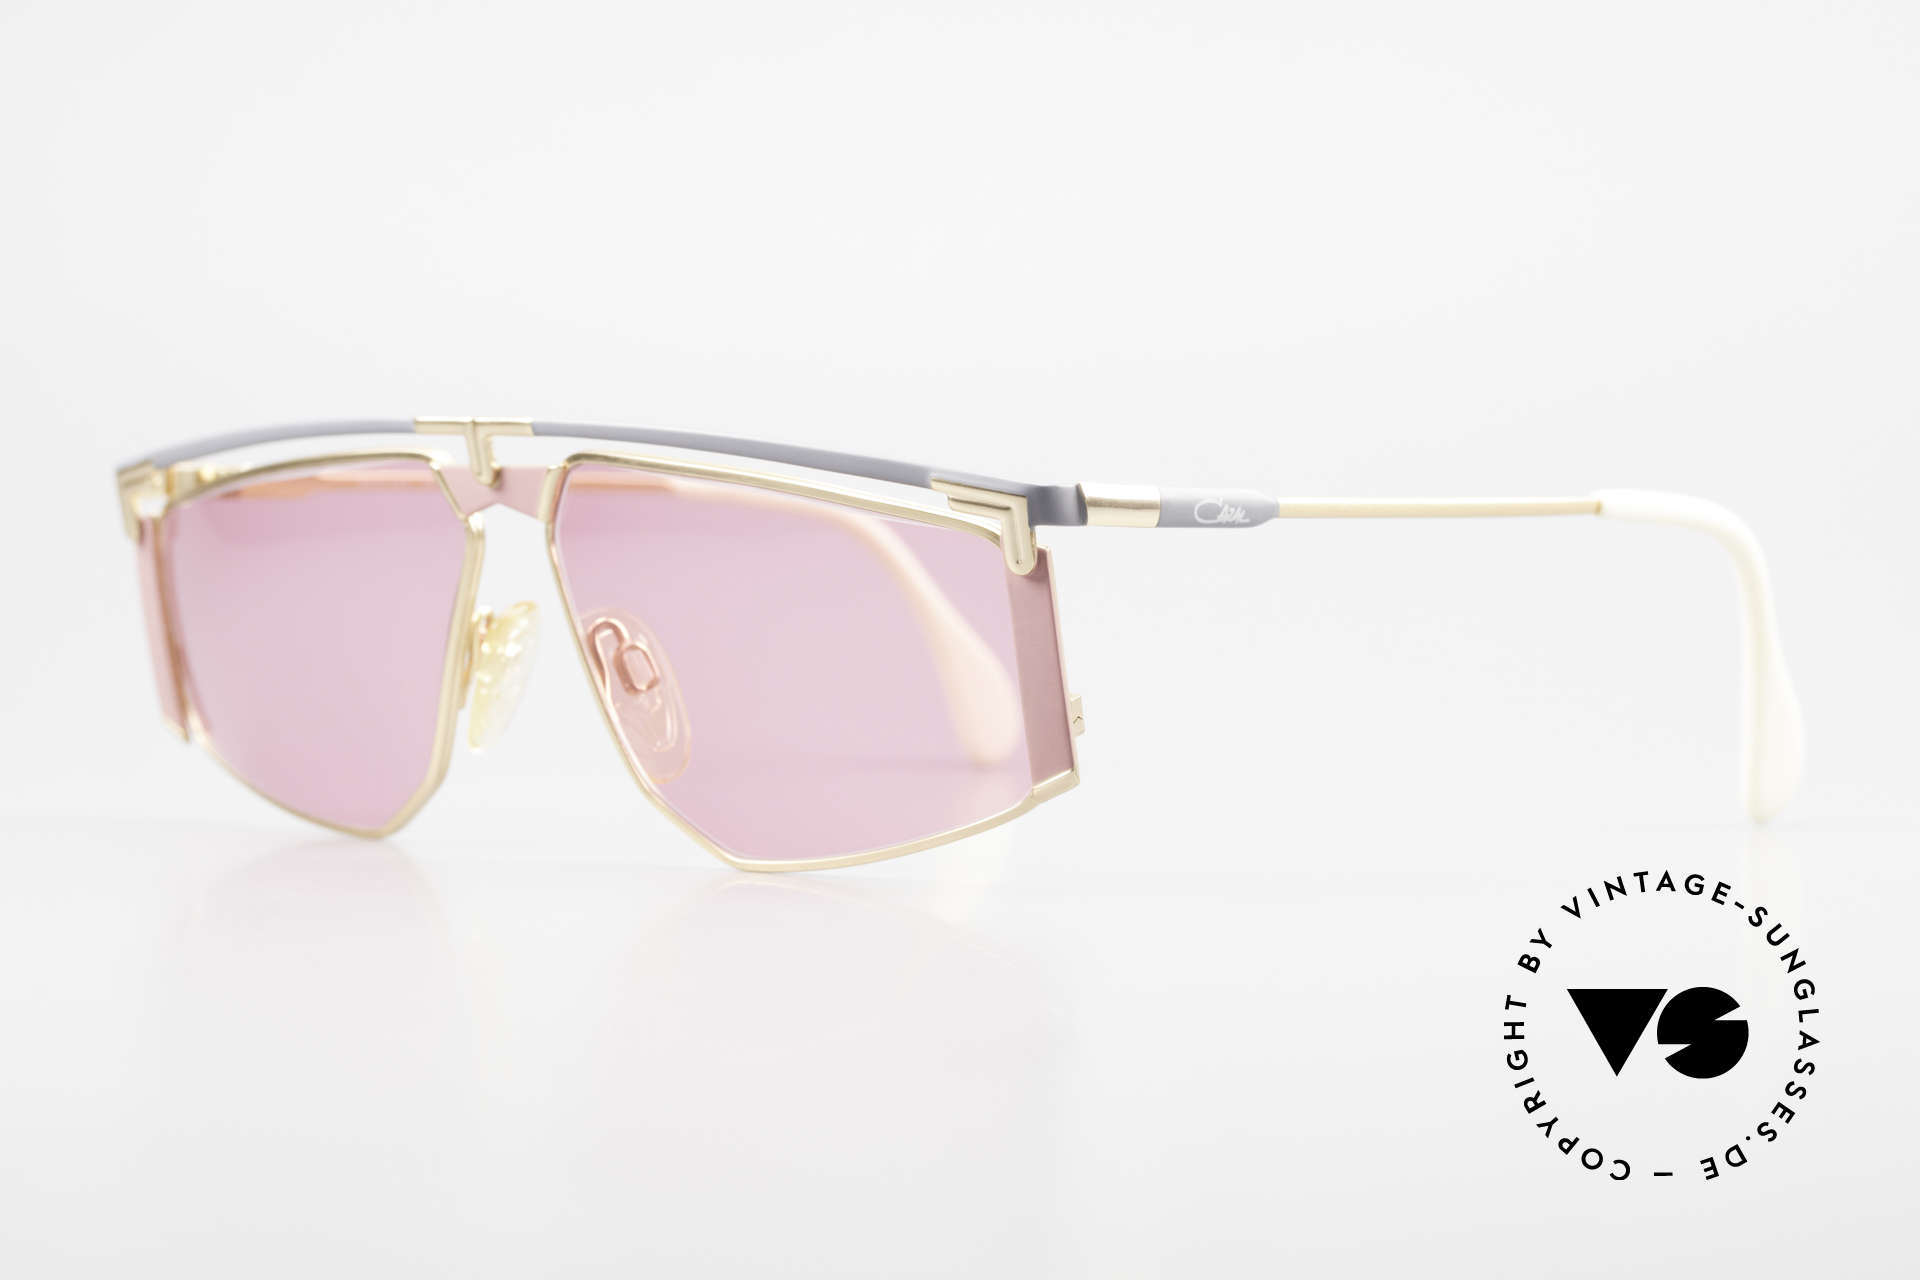 Cazal 235 Pink Titanium Vintage Frame, striking frame design (distinctive CAri ZALloni, CAZAL), Made for Men and Women